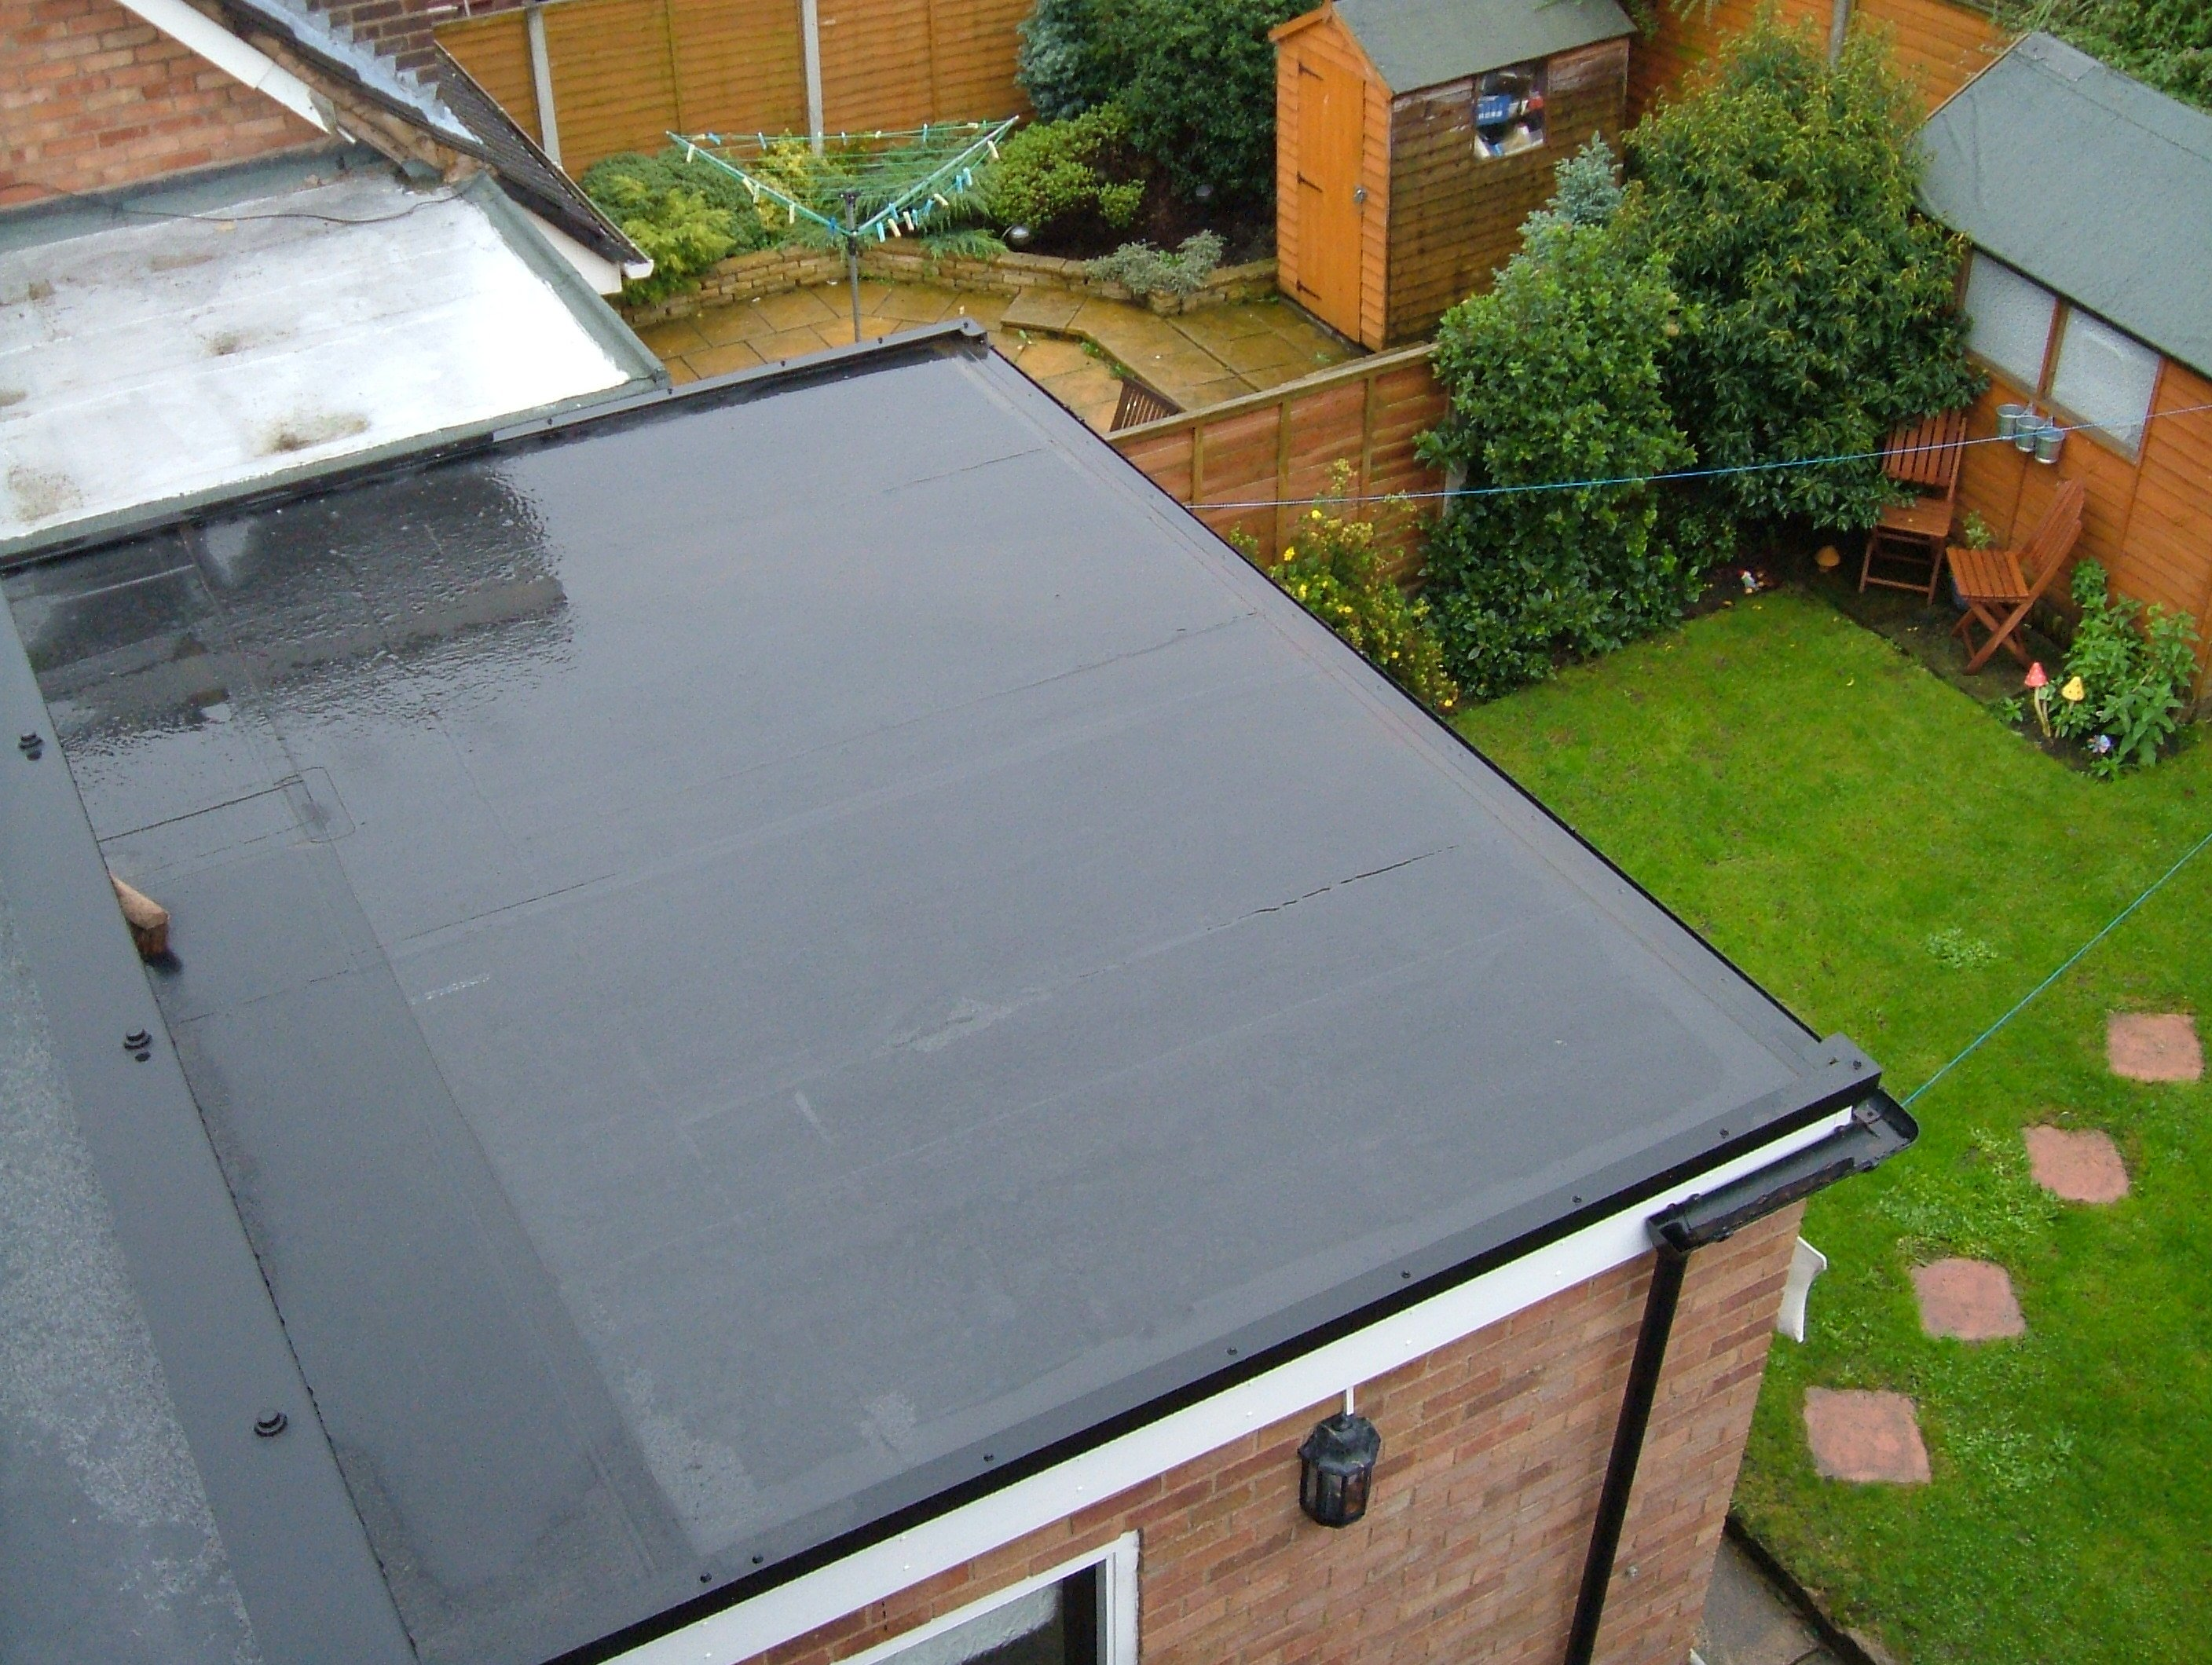 Flat Roof Materials Amp Installation Costs 2020 Pvc Vs Tpo